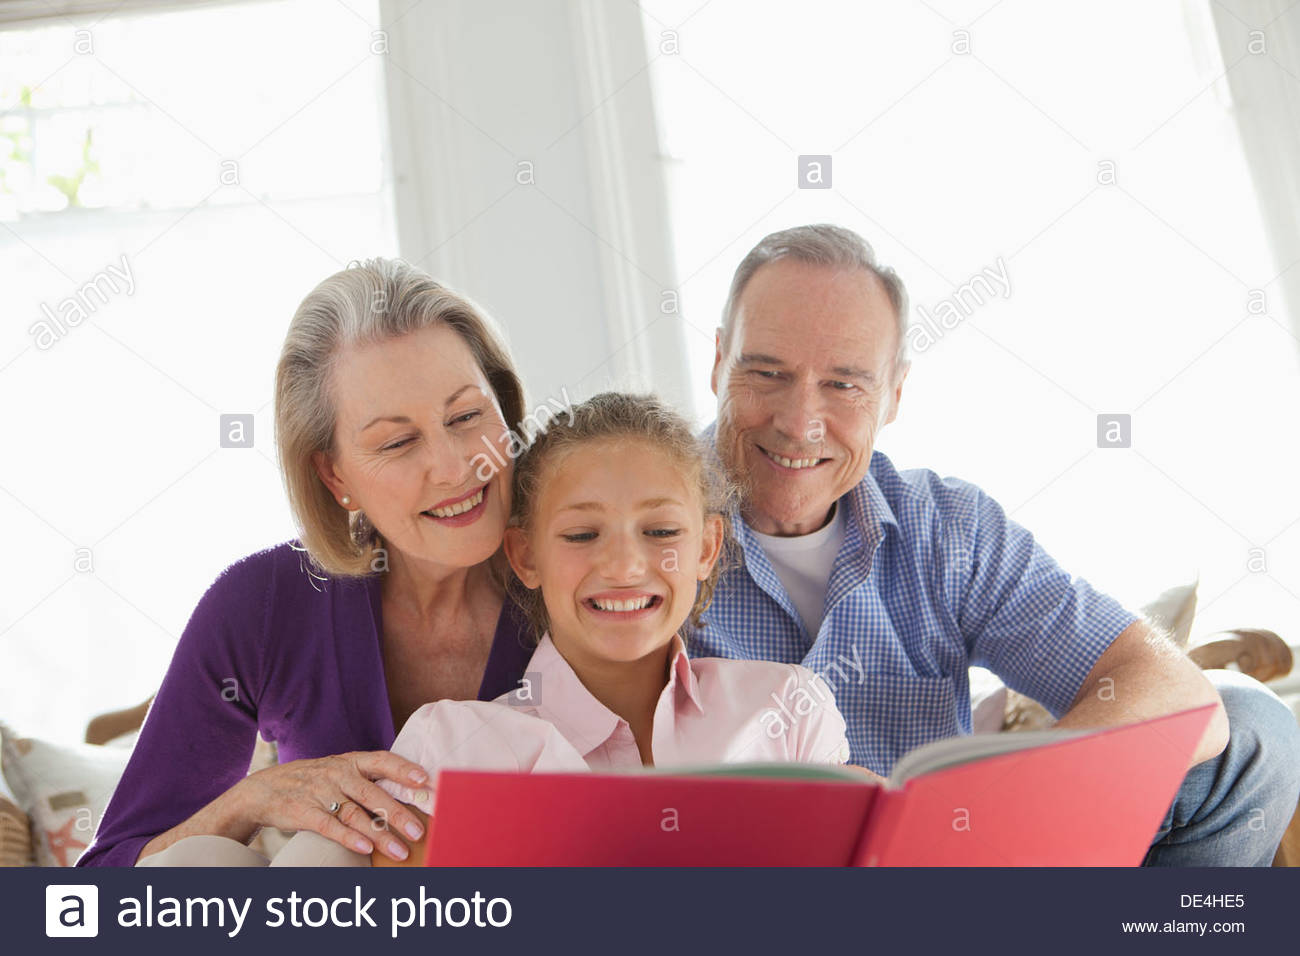 Smiling grandparents and granddaughter reading book Photo Stock